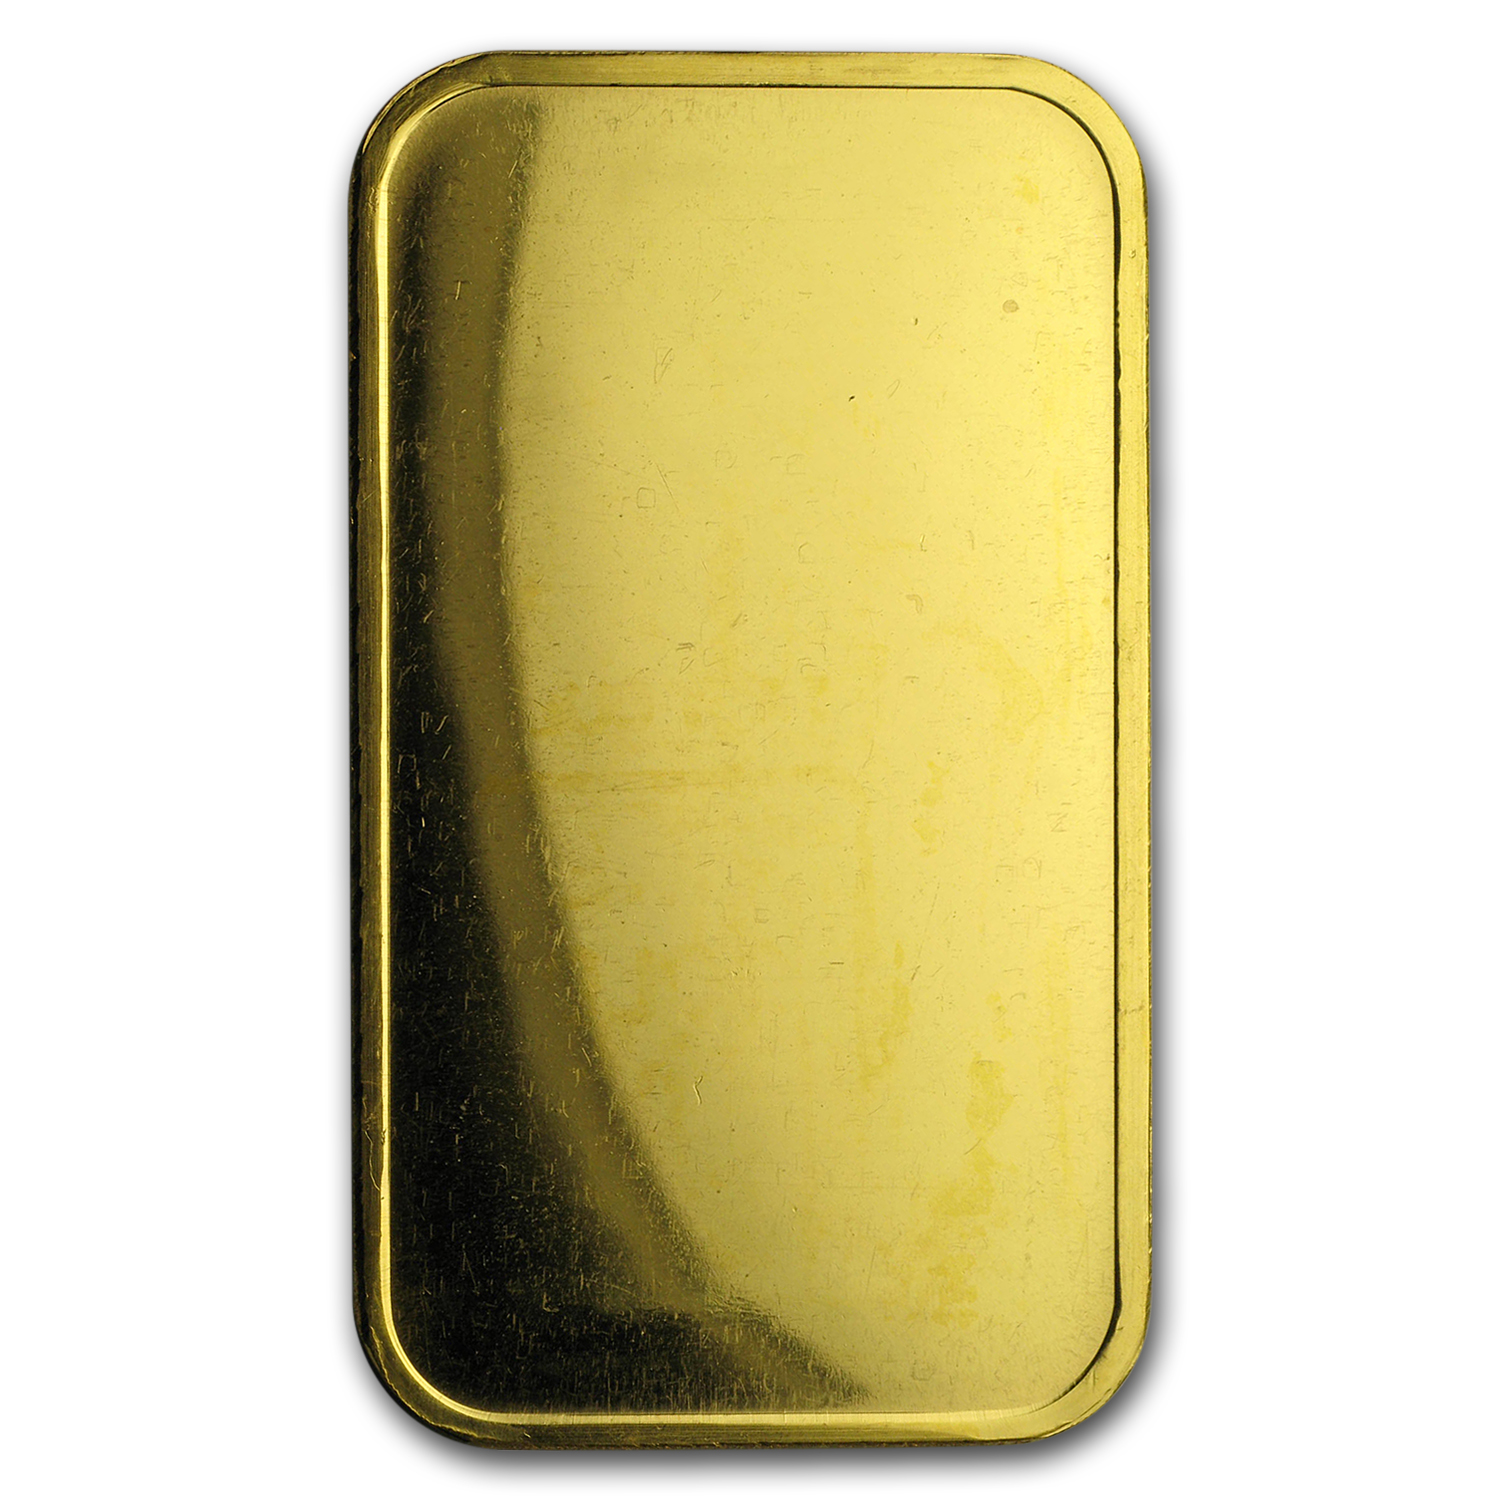 1 oz Gold Bar - Engelhard (Vintage)